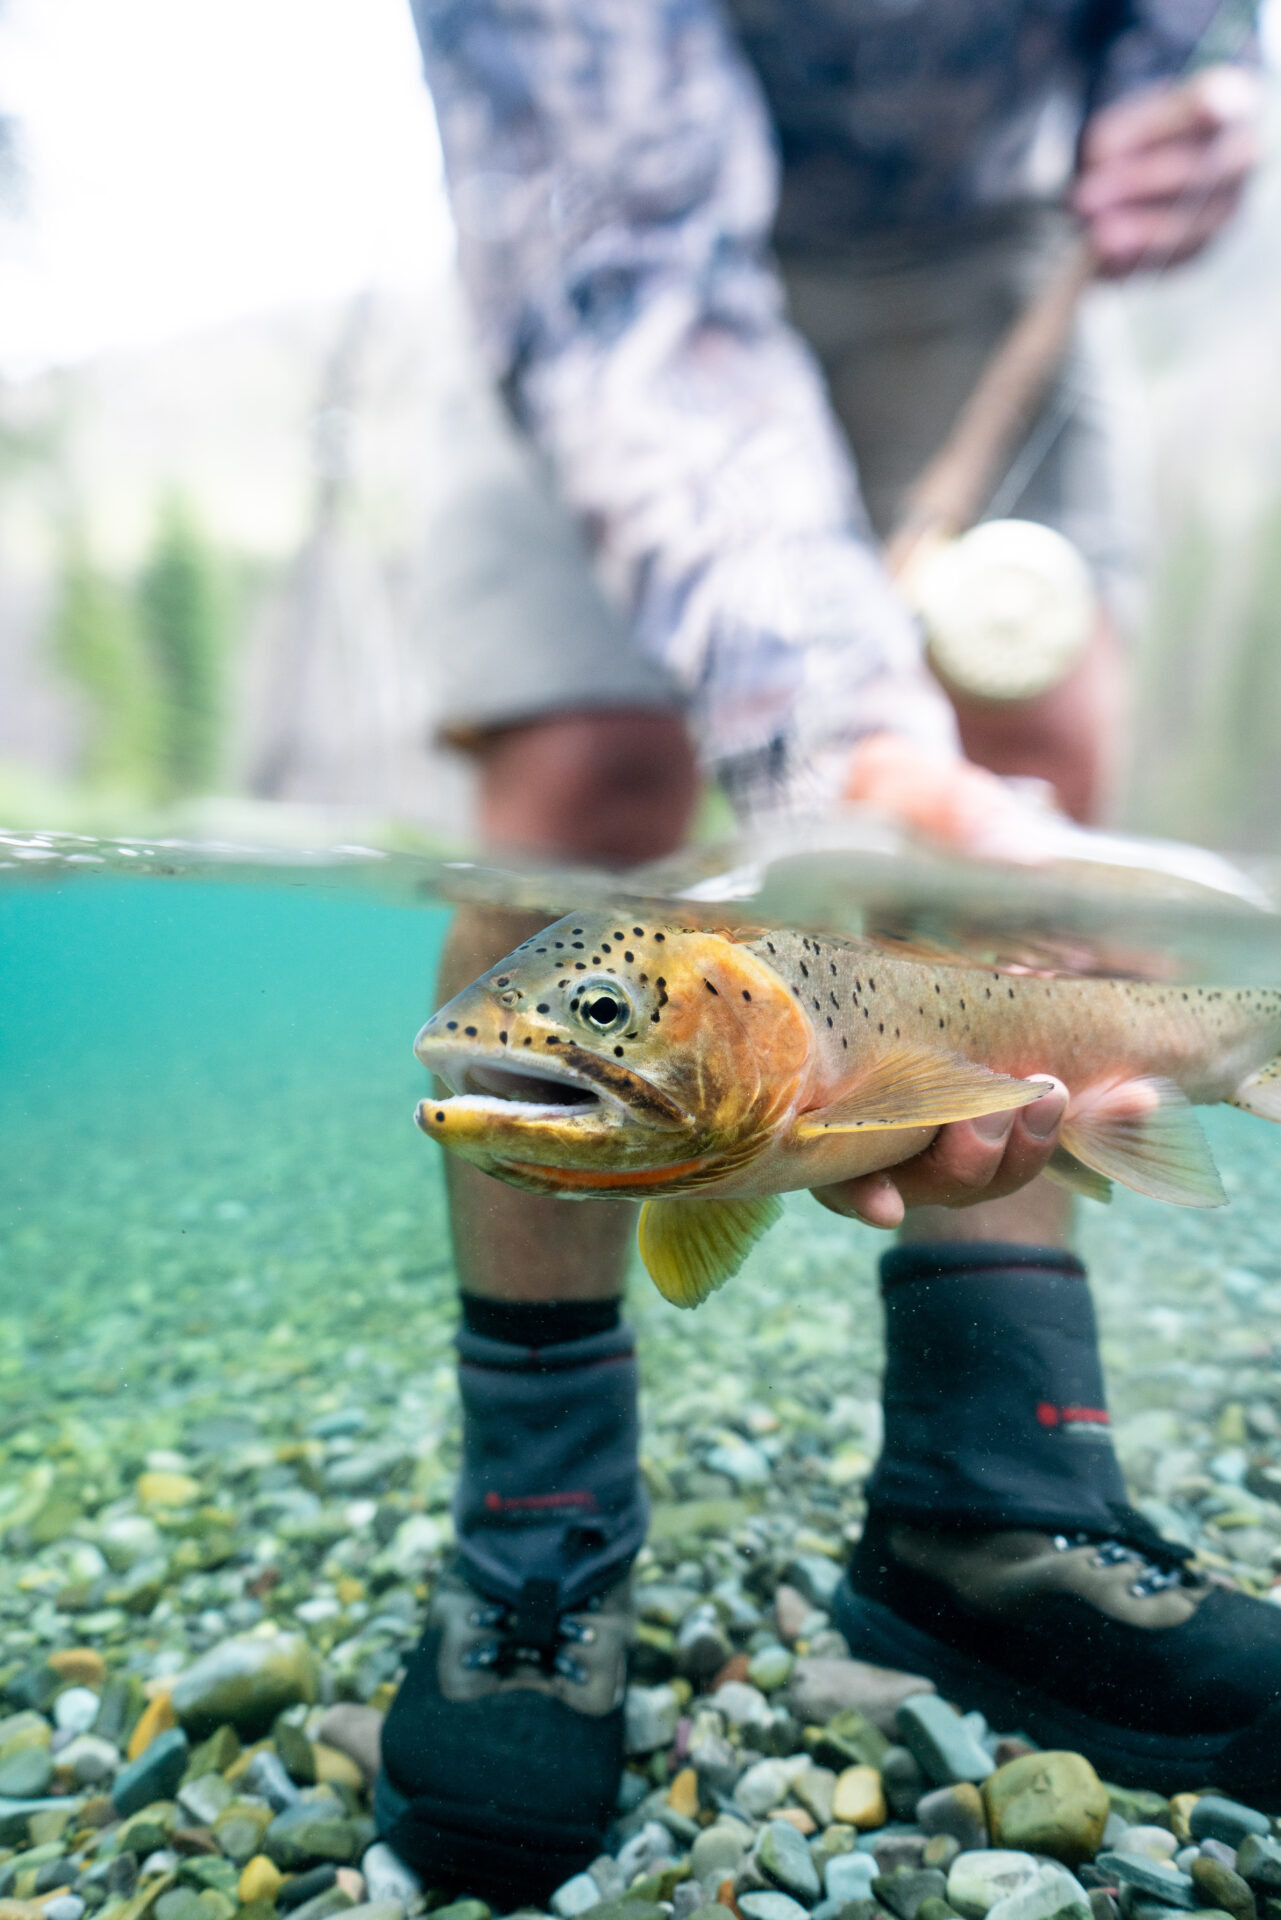 Cutthroat trout. Photo by Chase White.